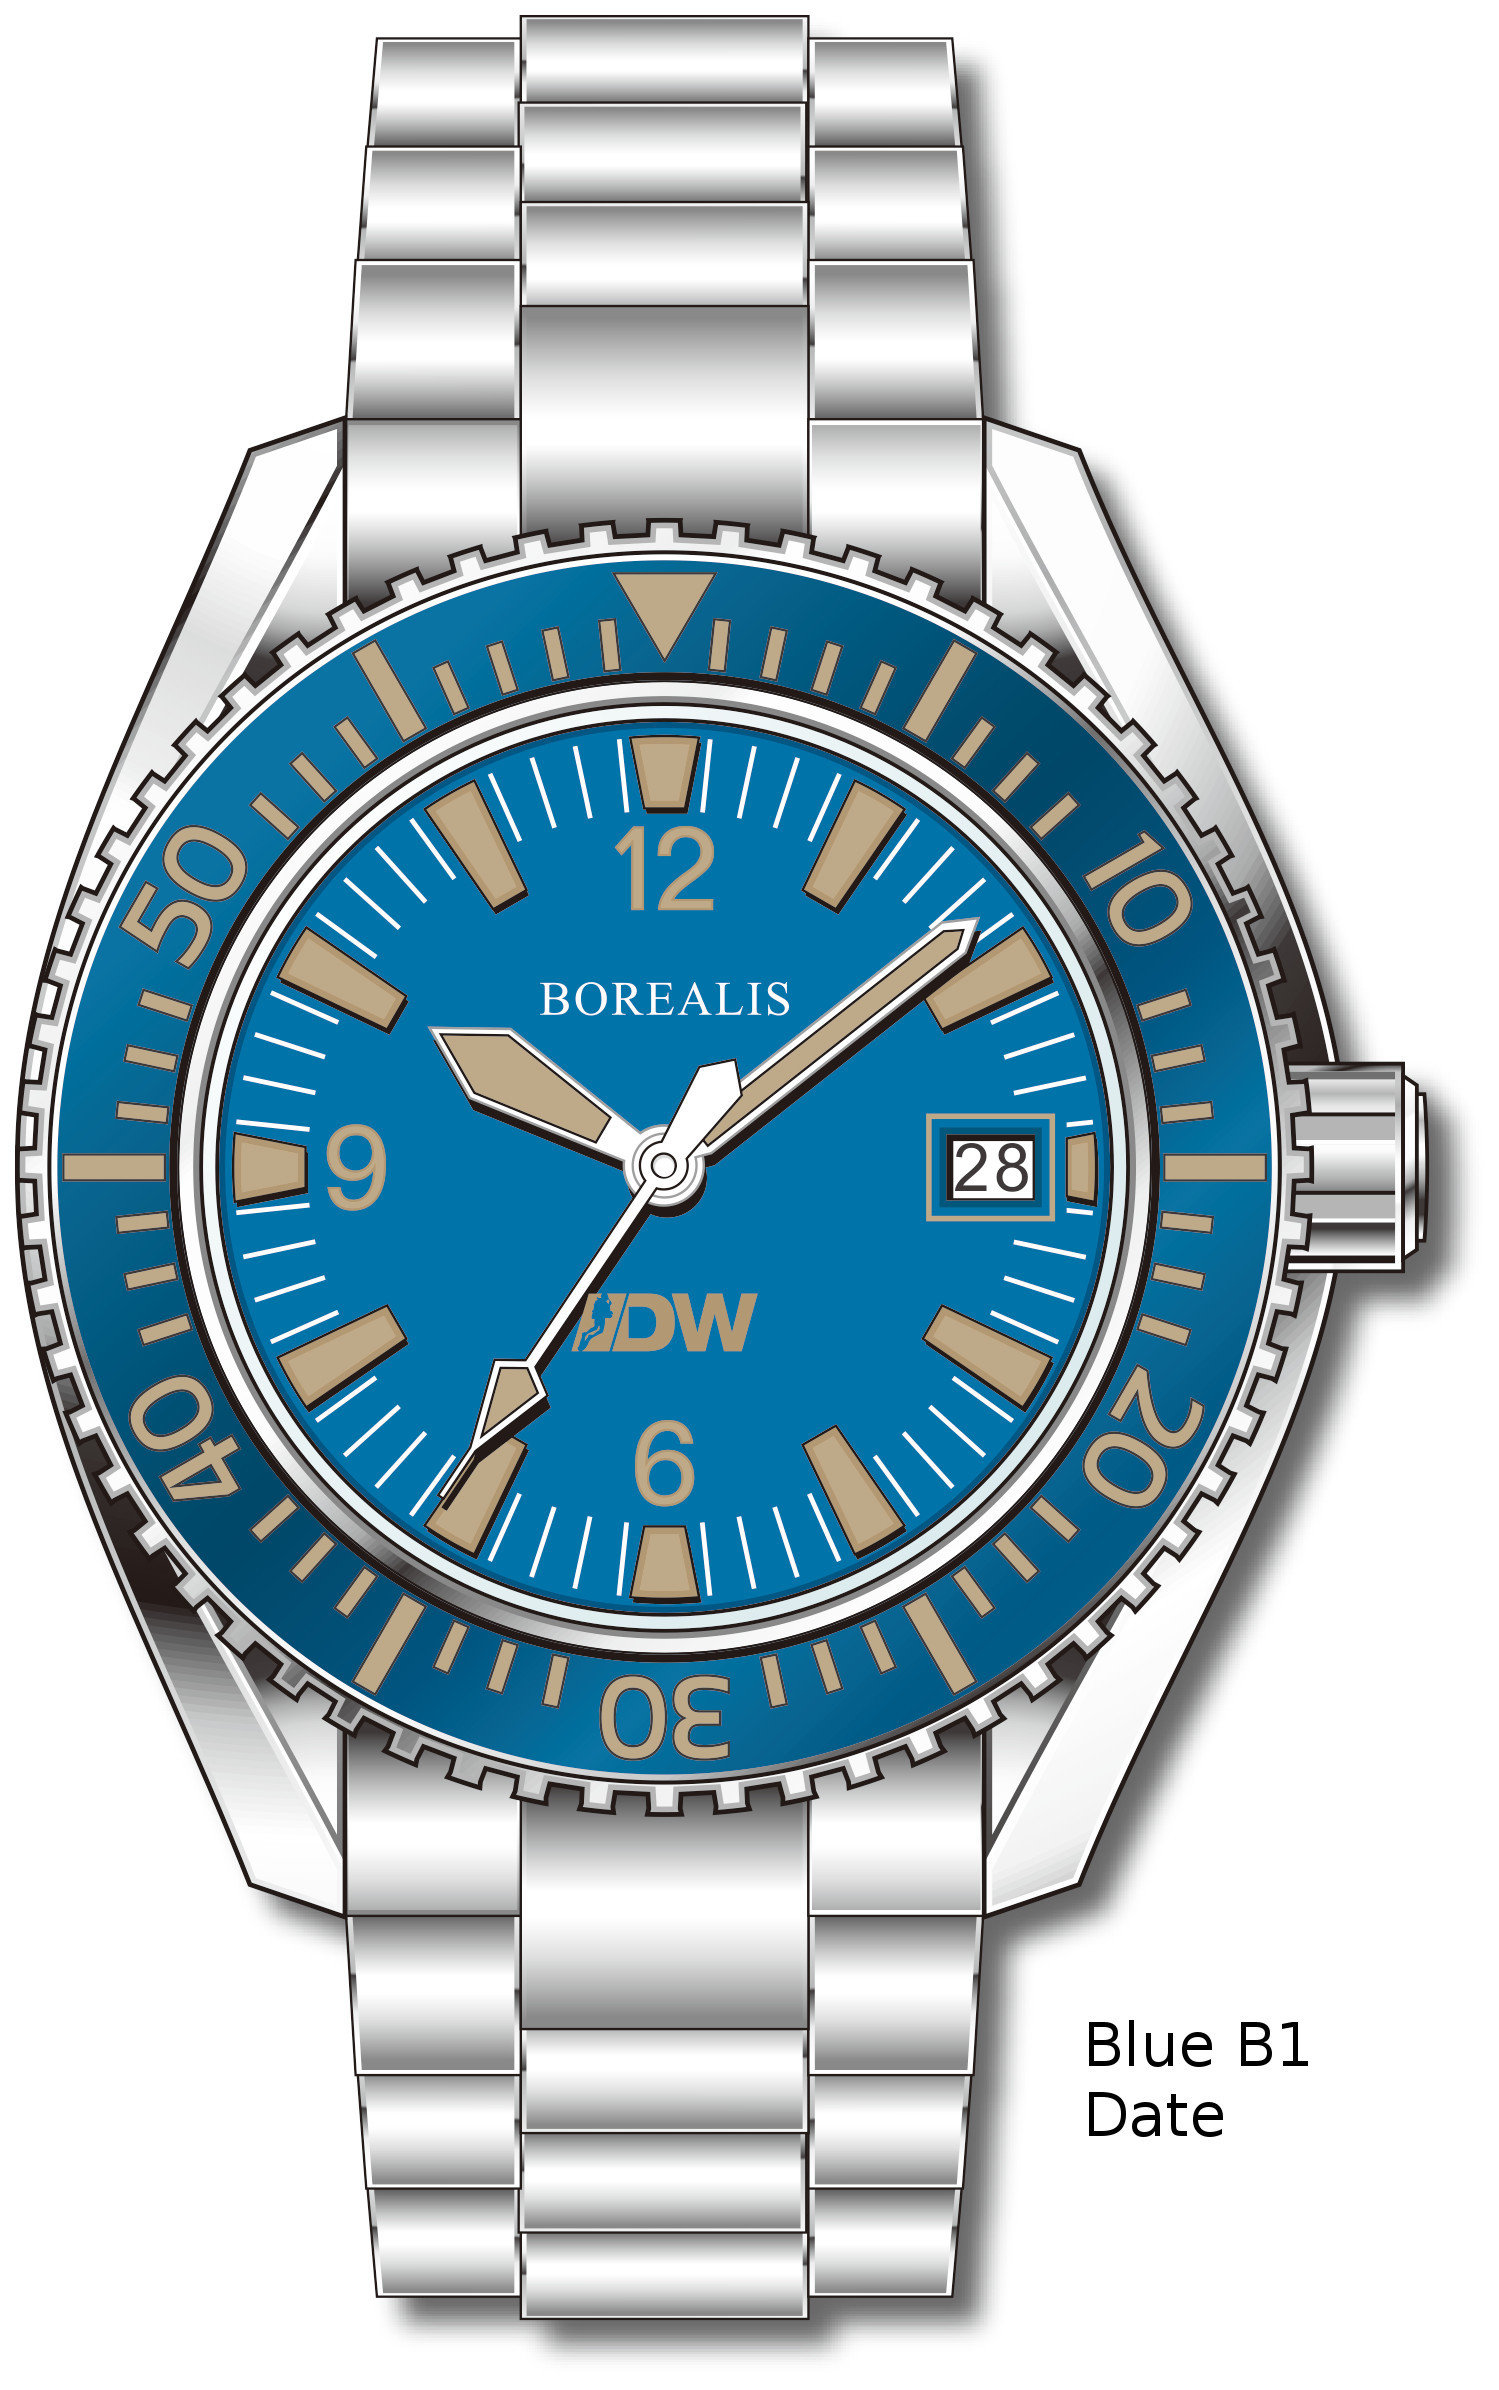 Pre-Order Borealis Estoril 300 for Diver's Watches Facebook Group Blue Dial Arabic Numbers Date Blue B1 Date EDWFBGBLUEB1DT